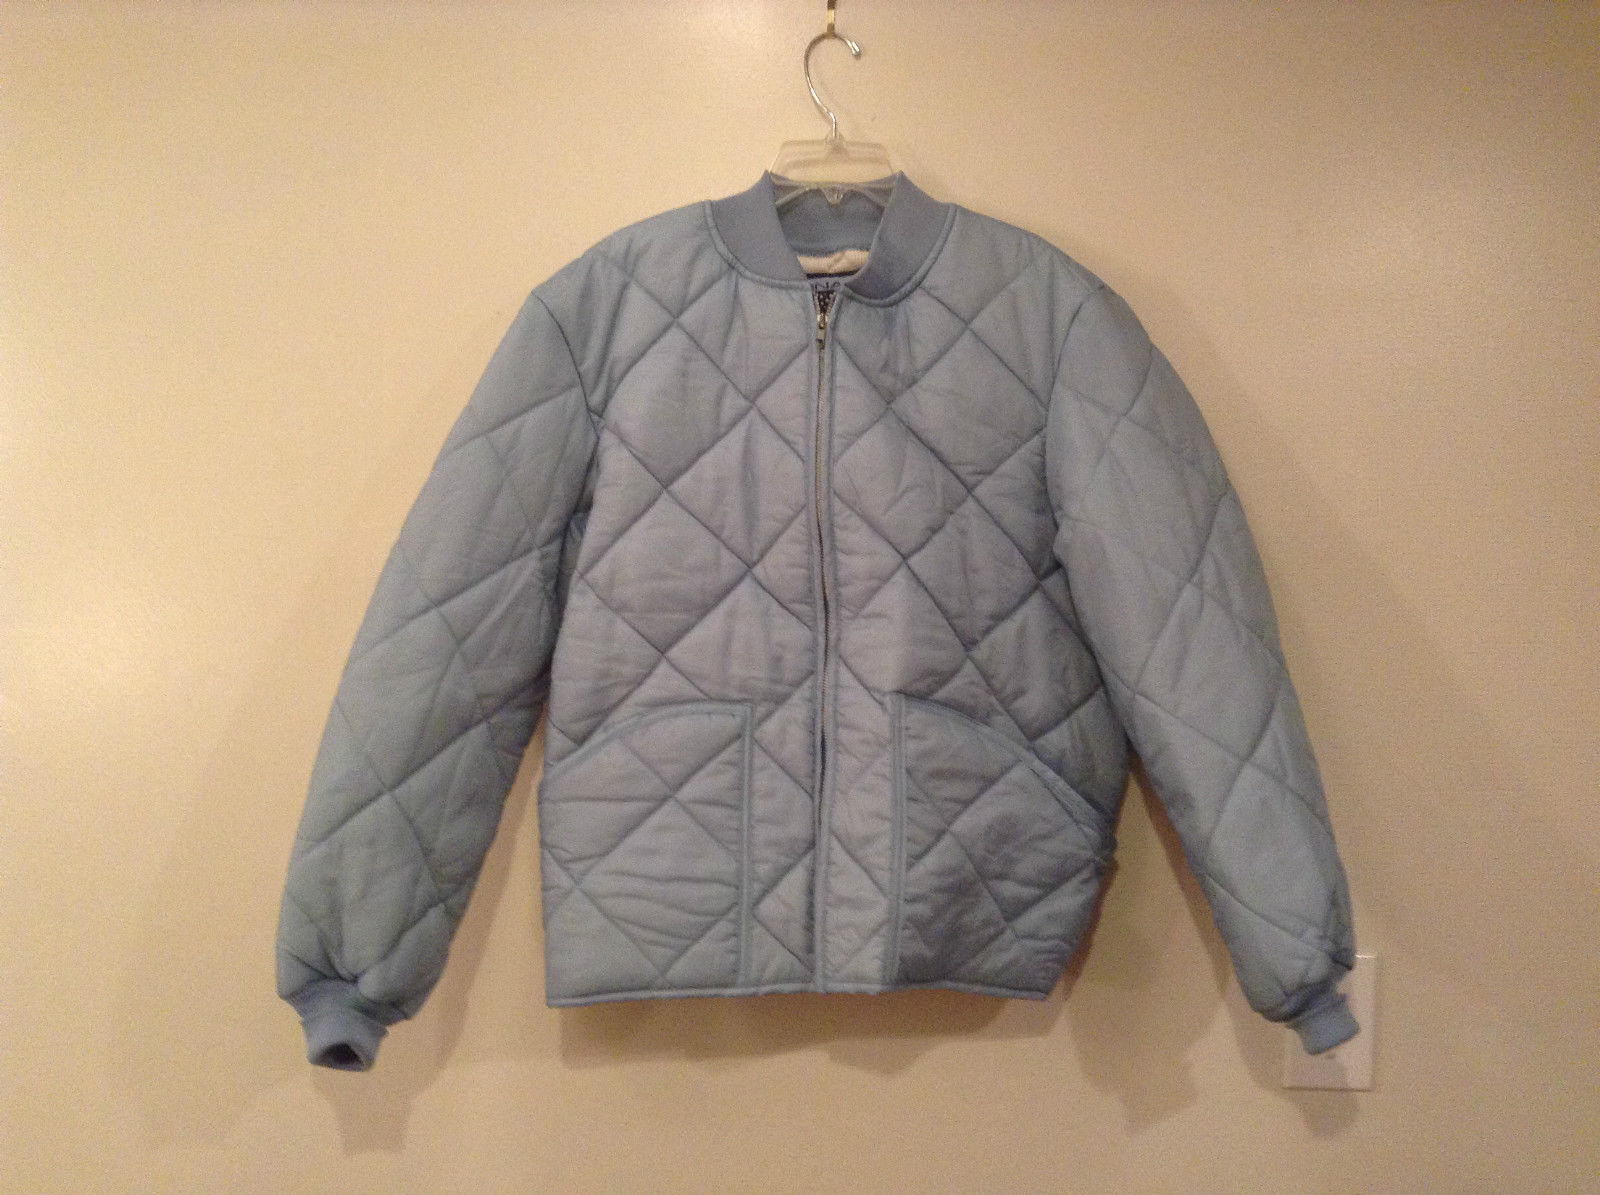 Baby Blue Thermal Lined Jacket by Snap N Wear Size M Elastic Collar Cuffs NEW